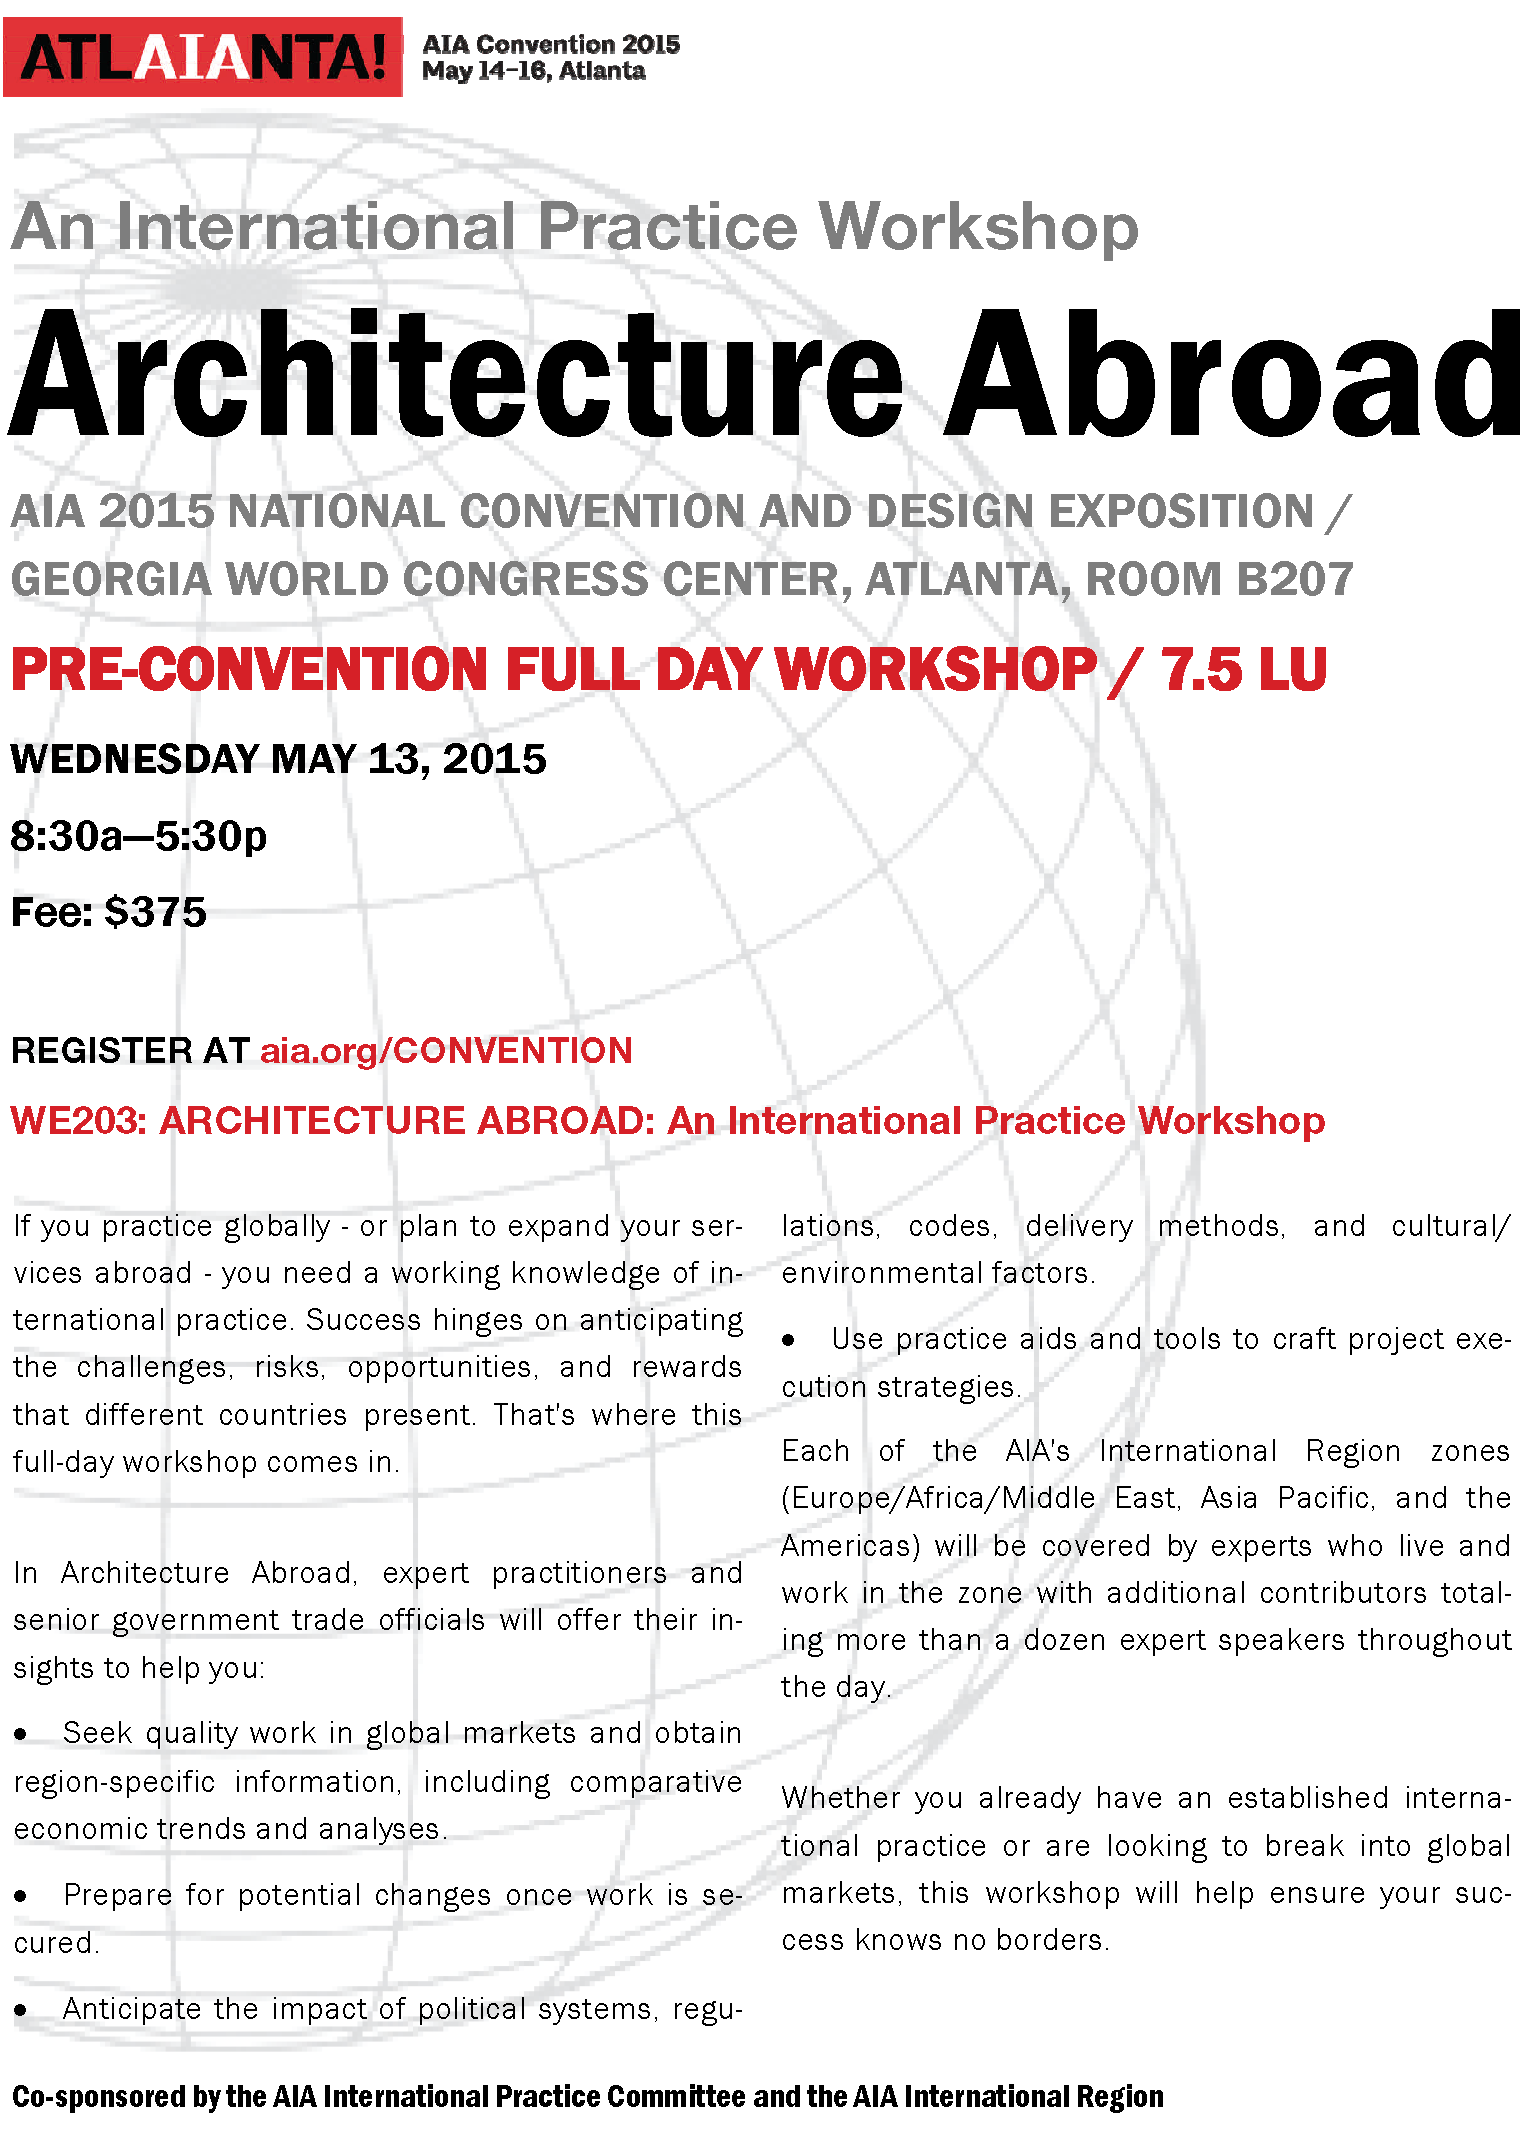 AIA Convention 2015 International Practice Workshop